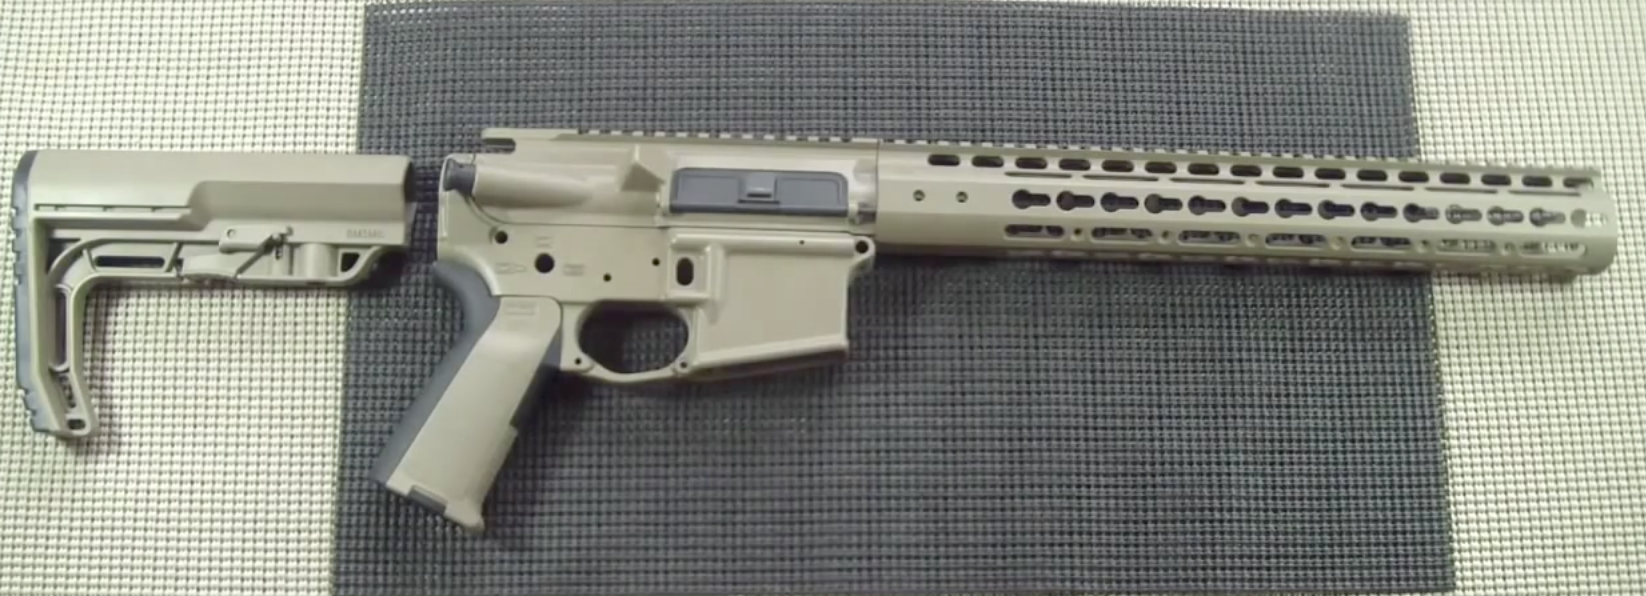 Cerakote vs Anodize - Making the Best Decision for Your AR Lower - Featured Image 3